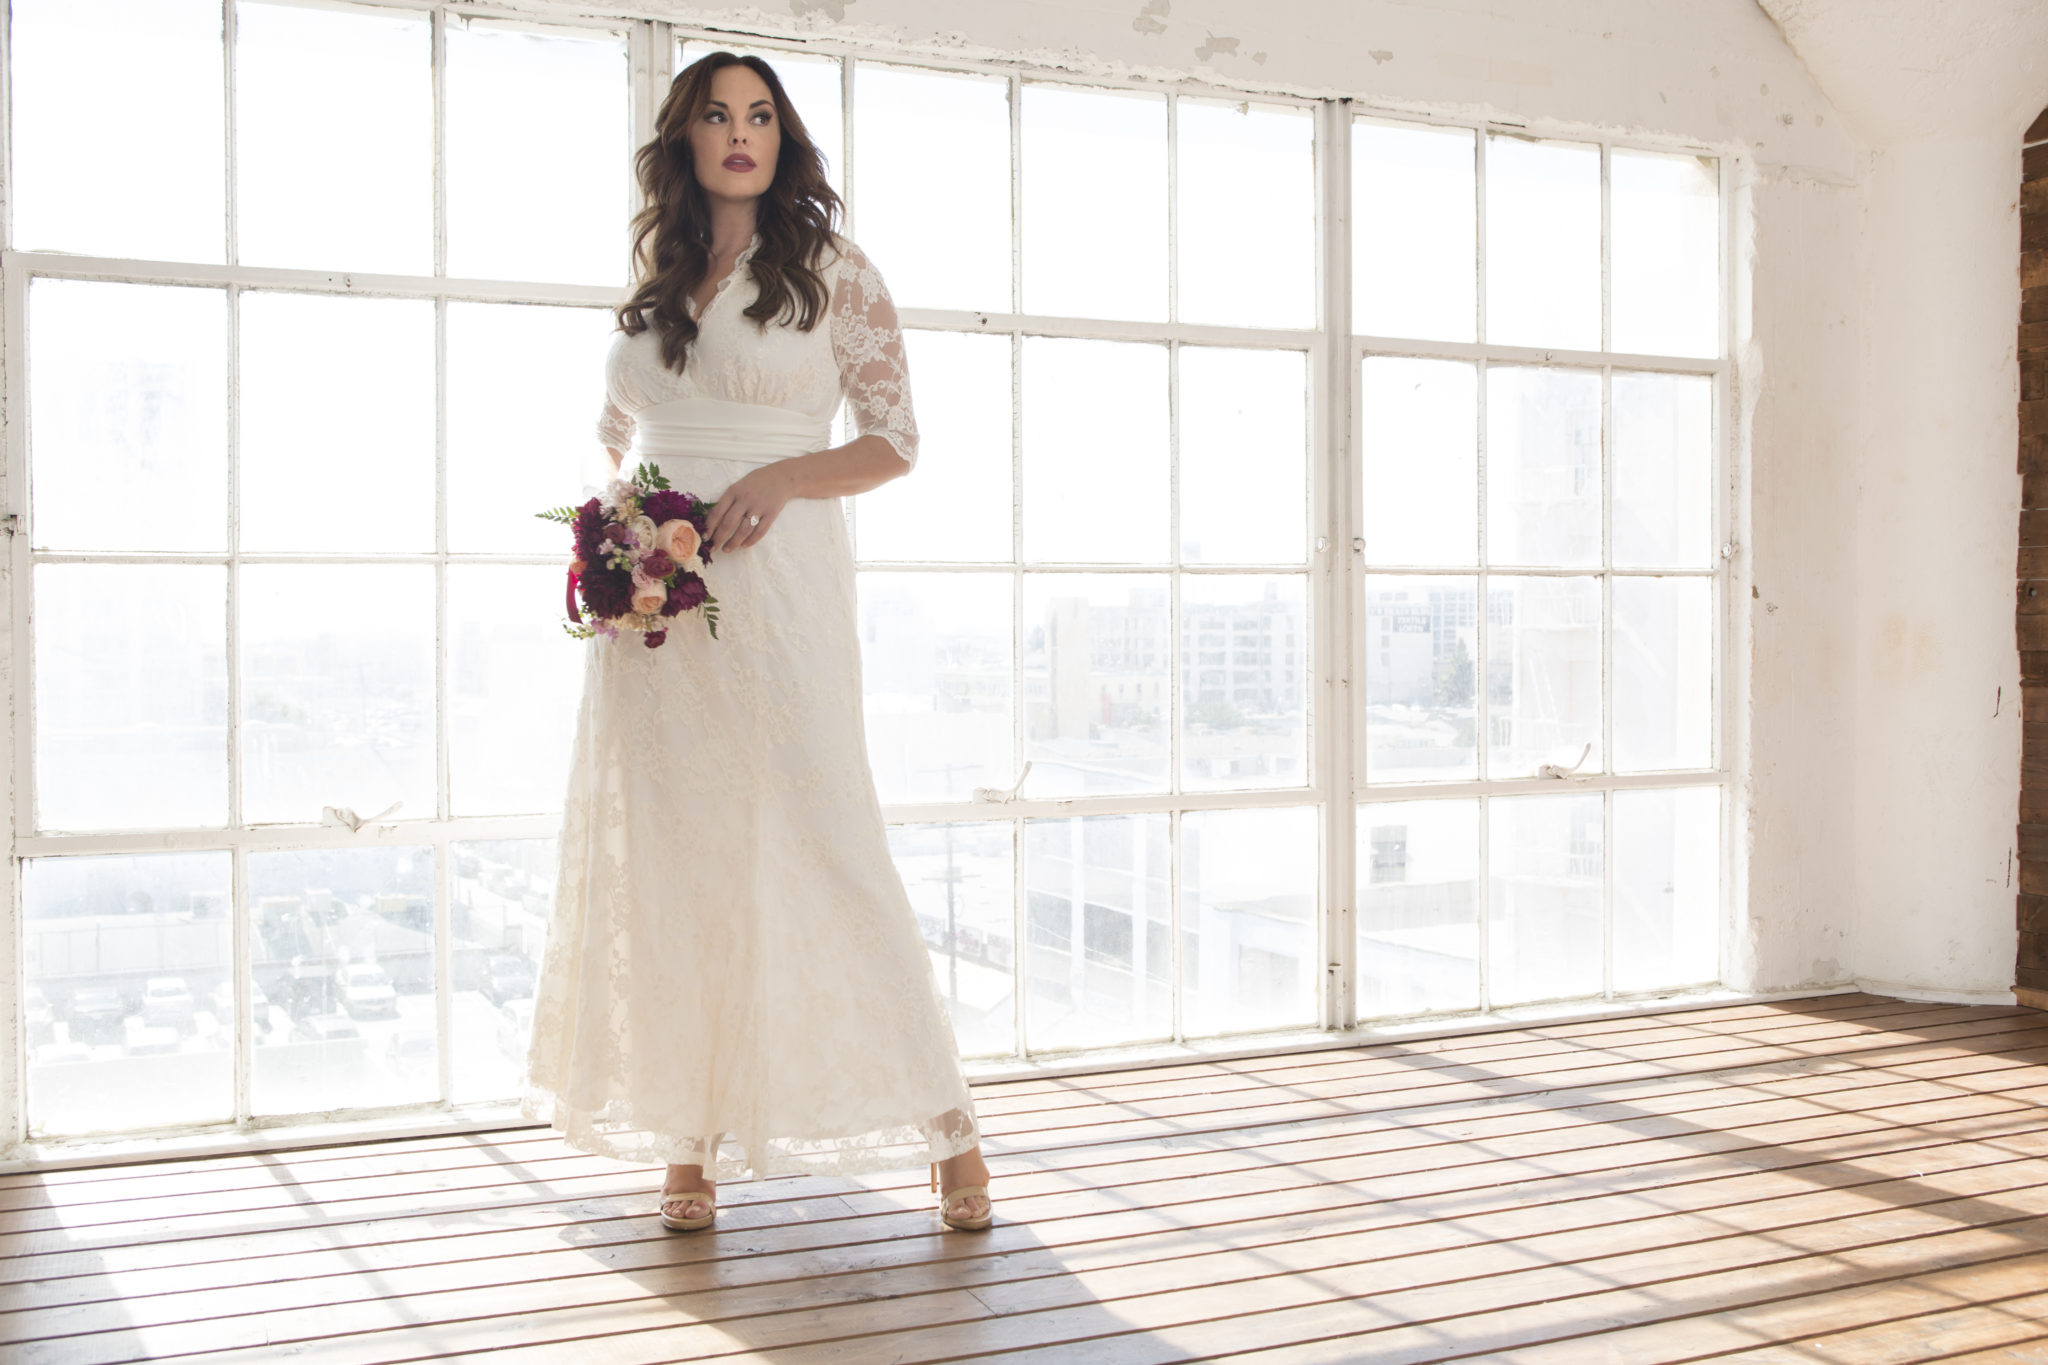 Bride in V-neck lace wedding dress with 3/4 sleeves against a wall of windows